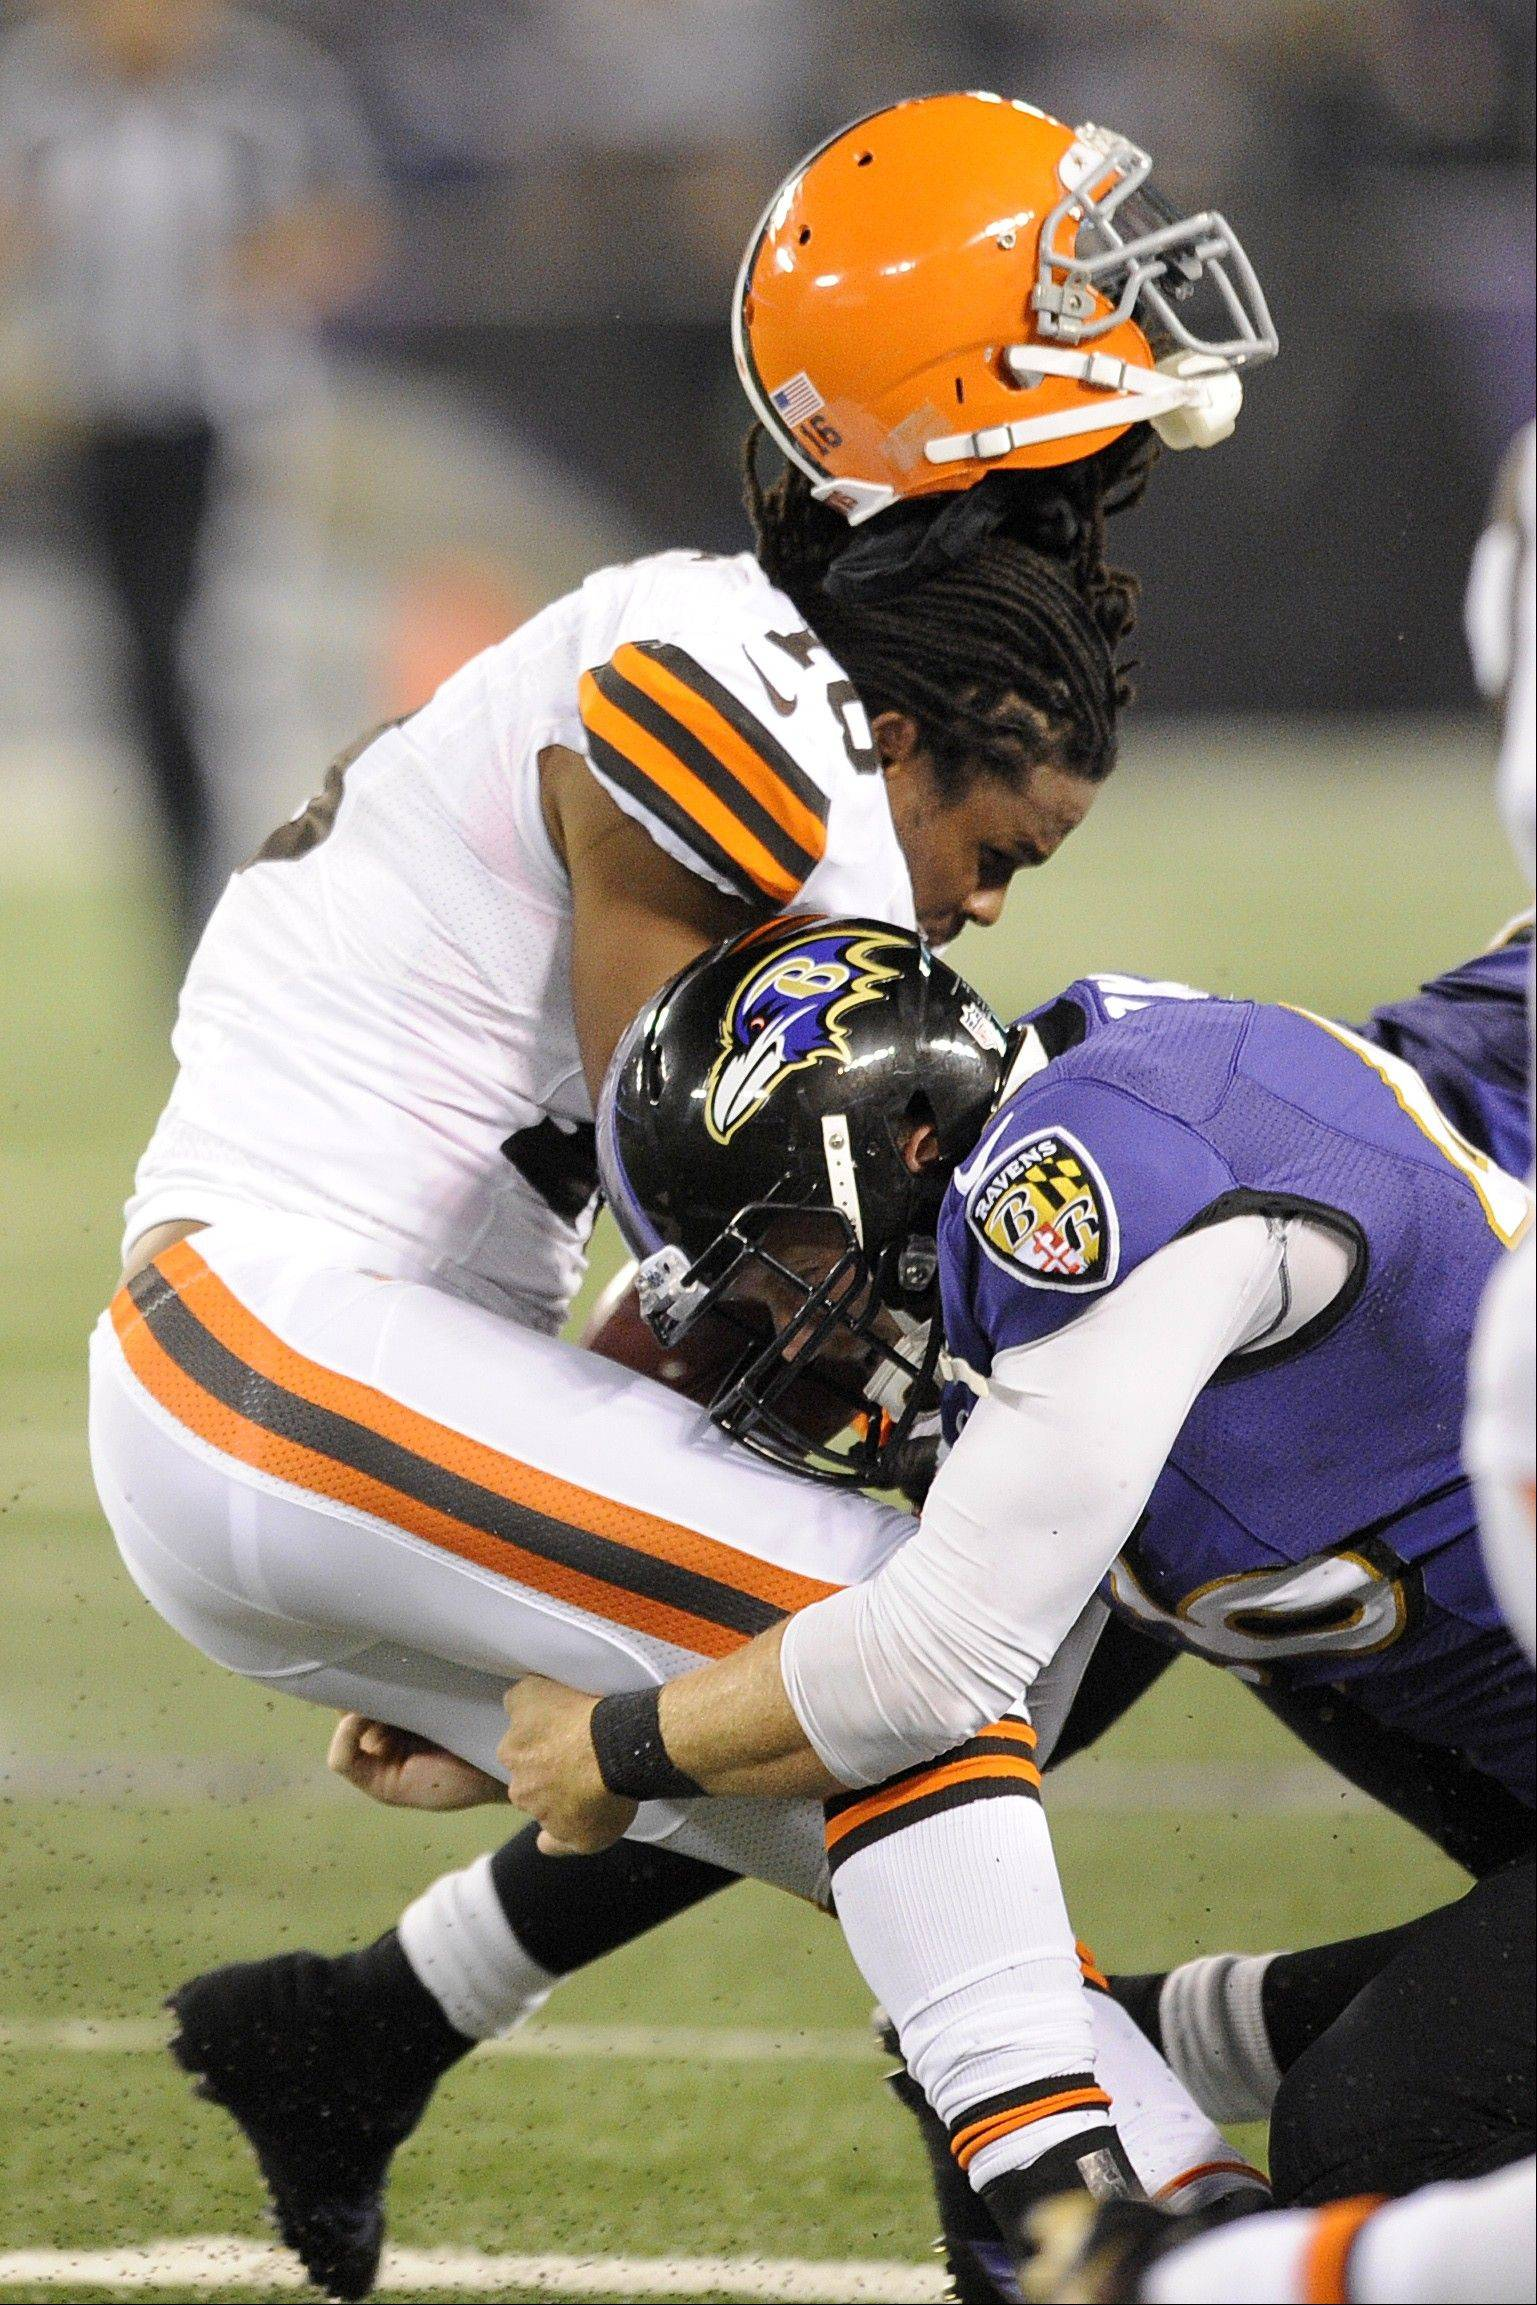 Ravens long snapper Morgan Cox tackles Cleveland Browns wide receiver Josh Cribbs as Cribbs' helmet is dislodged from a hit by another player Thursday night in Baltimore.